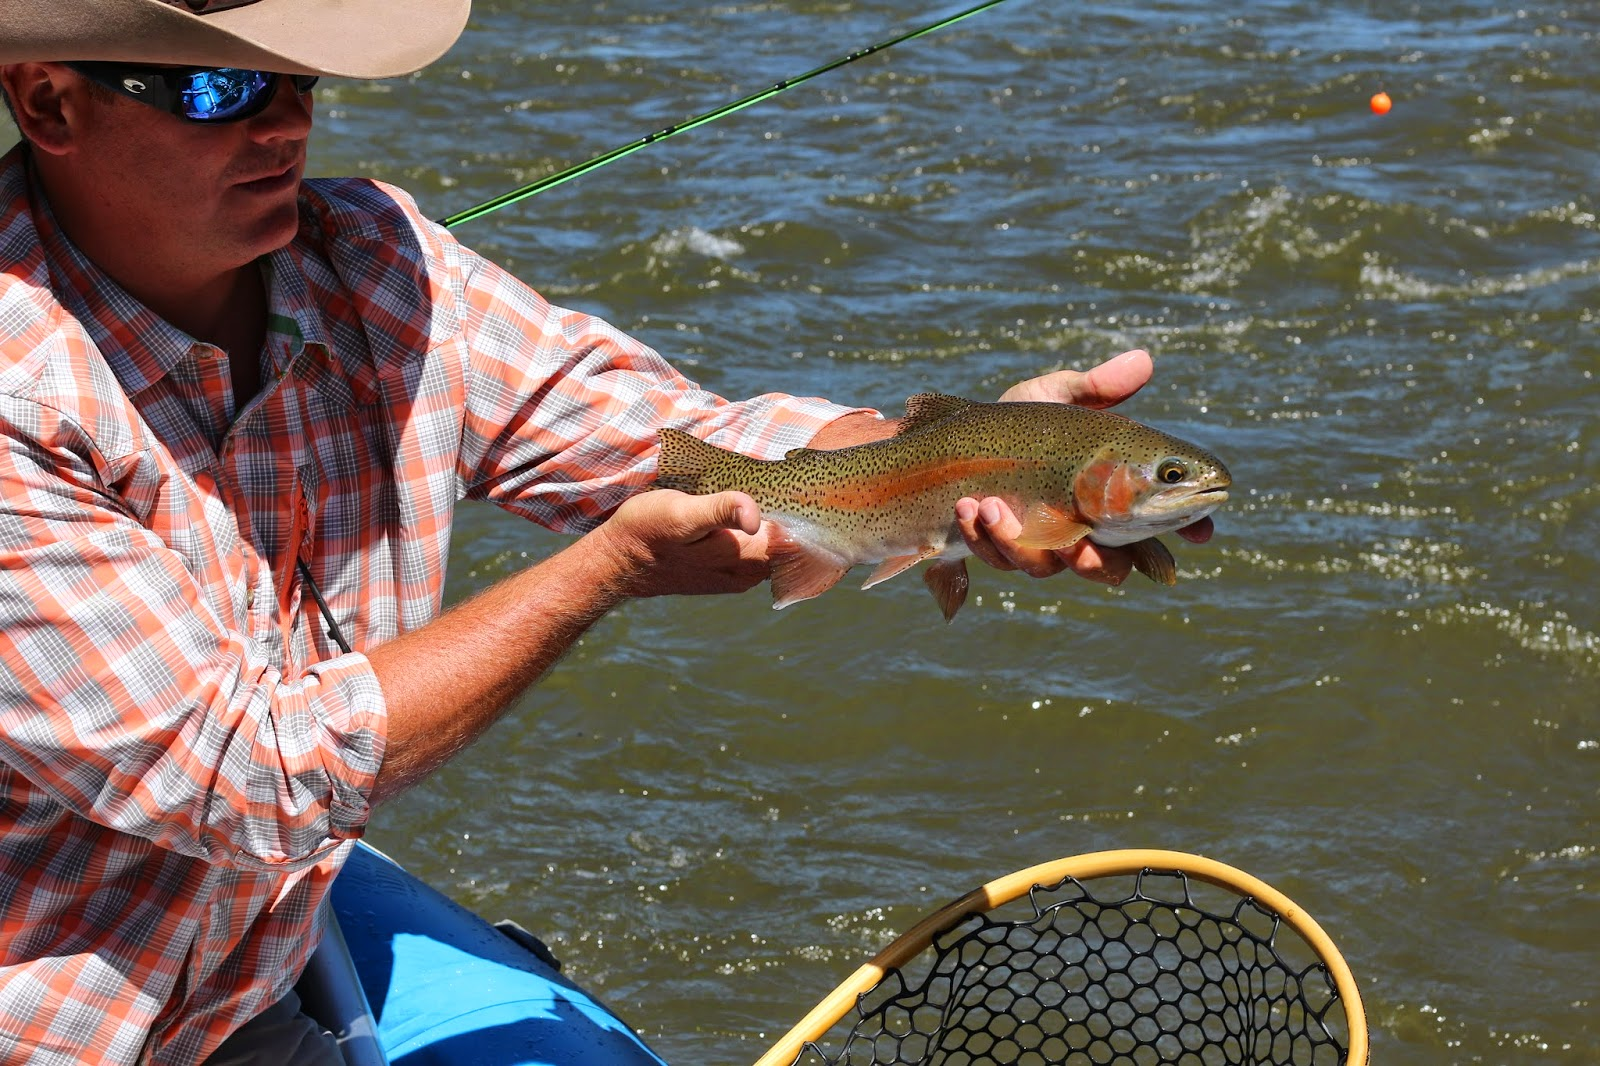 Roaring+fork+river+fly+fishing+with+Jay+Scott+Outdoors+5.JPG